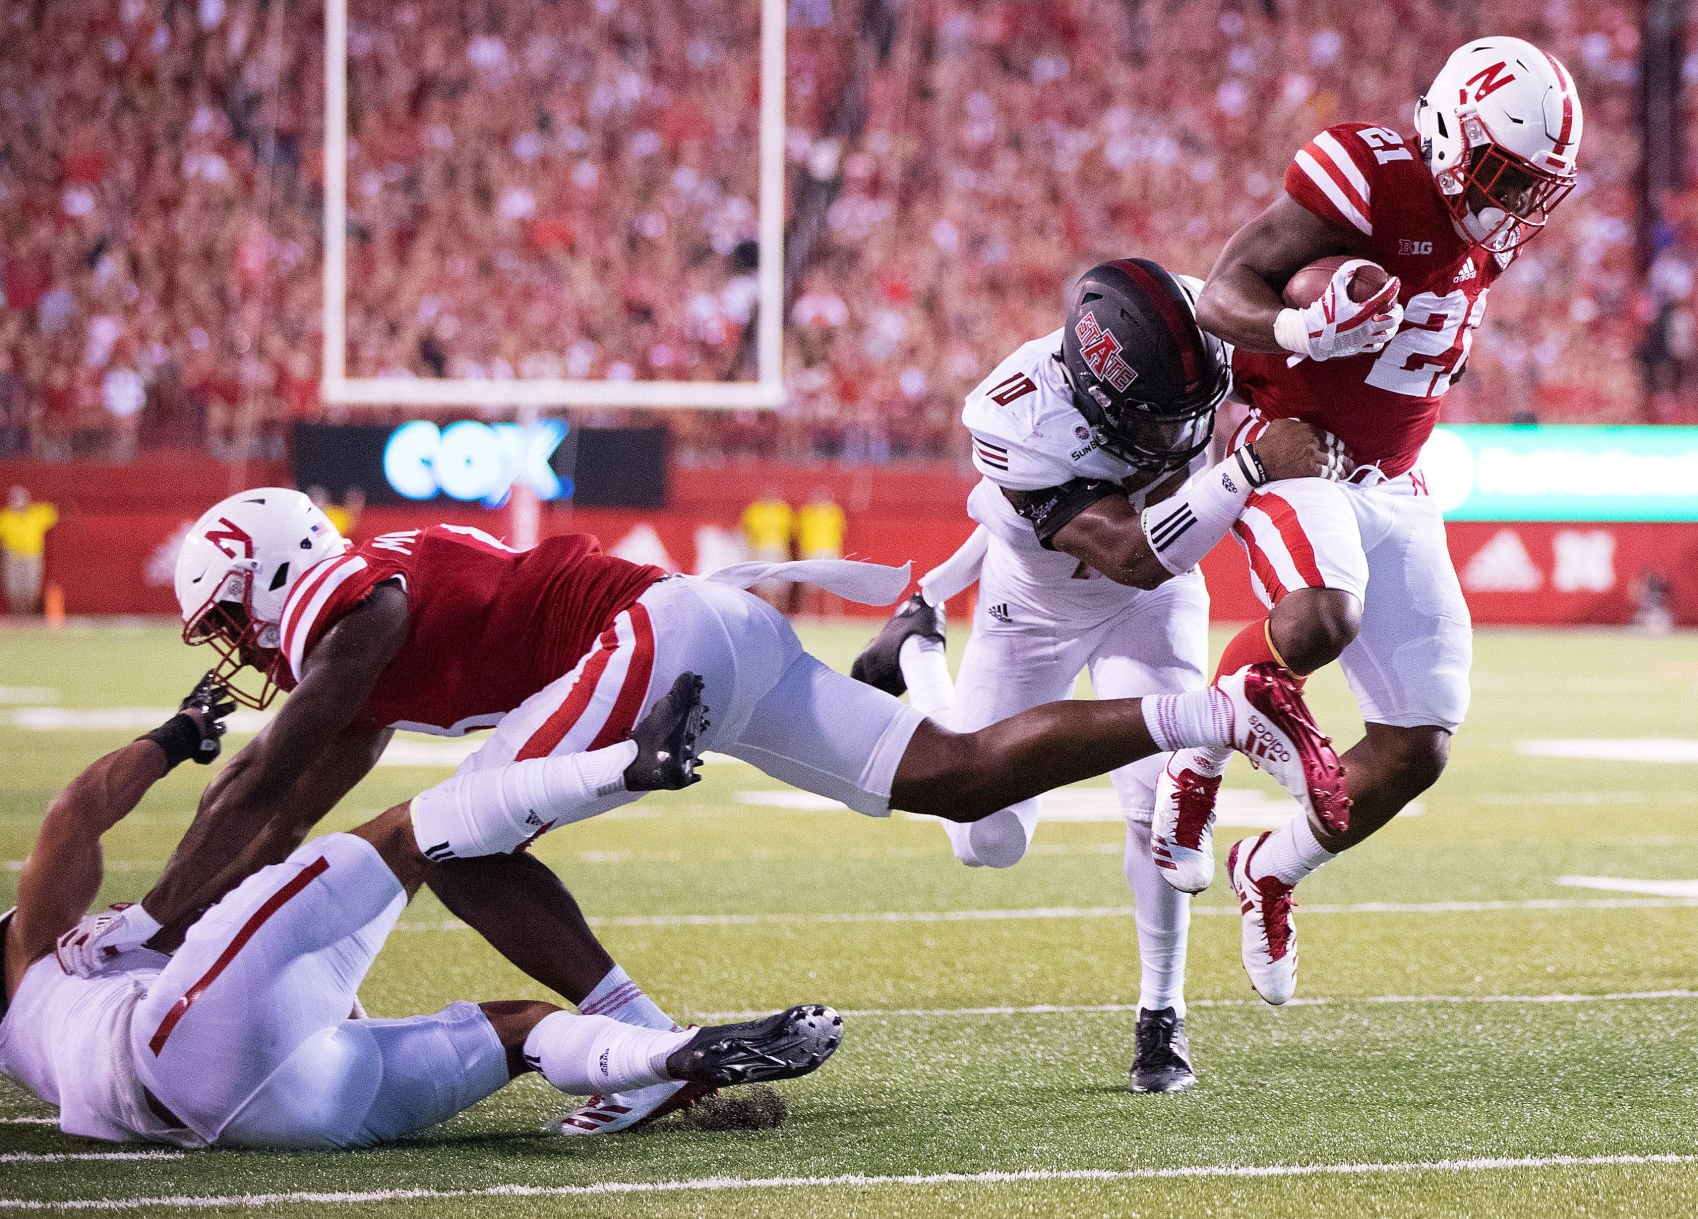 INT returns help Northern Illinois stun Nebraska